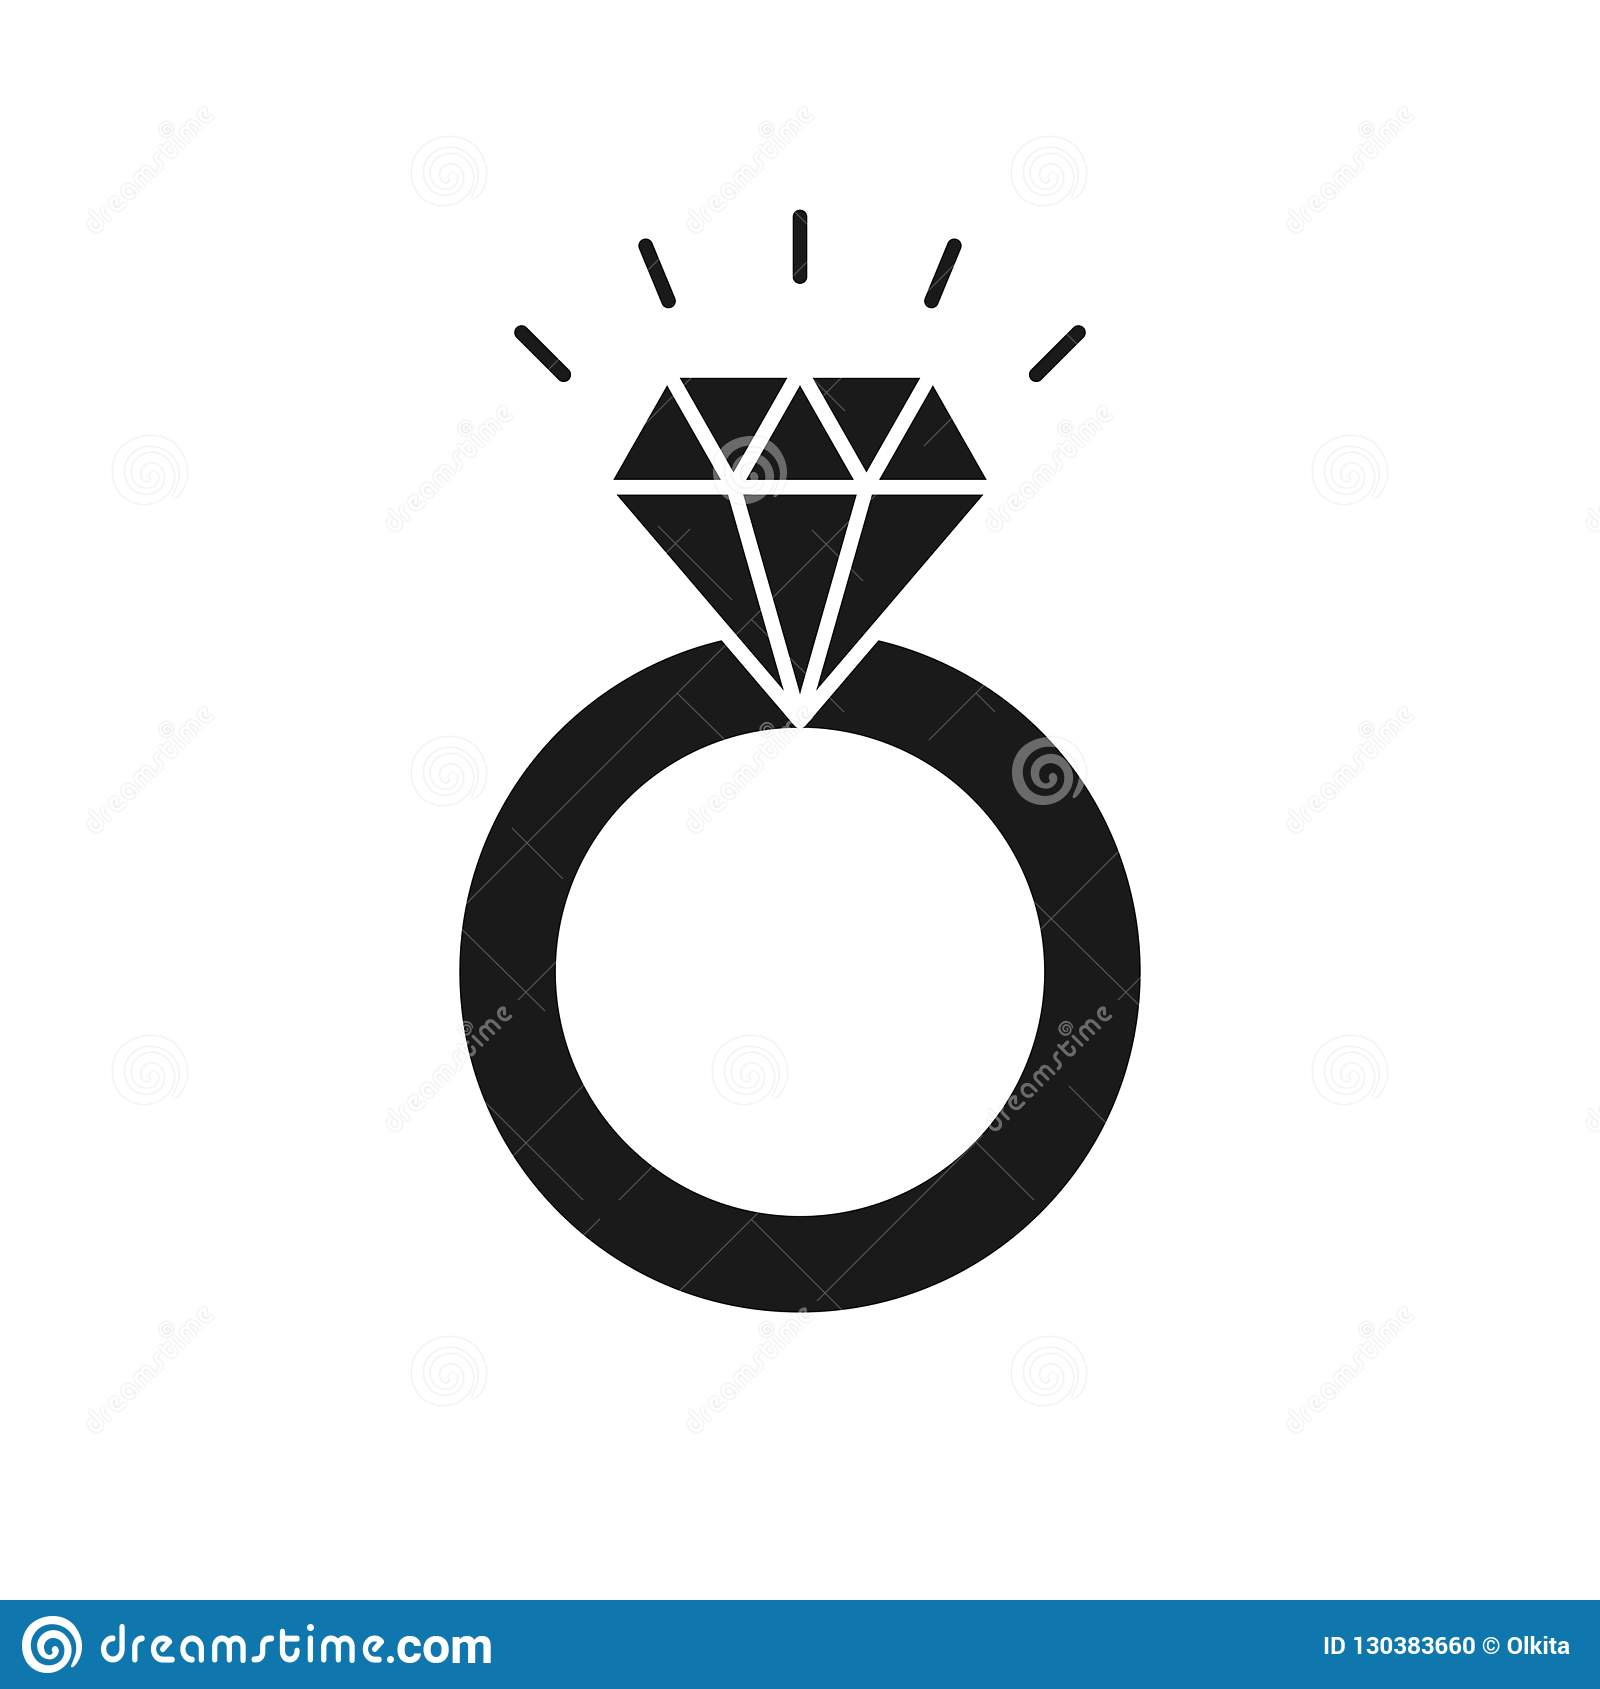 Black Isolated Icon Of Ring With Diamond On White Background Silhouette Of Wedding Ring Flat Design Stock Vector Illustration Of Luxury Carat 130383660